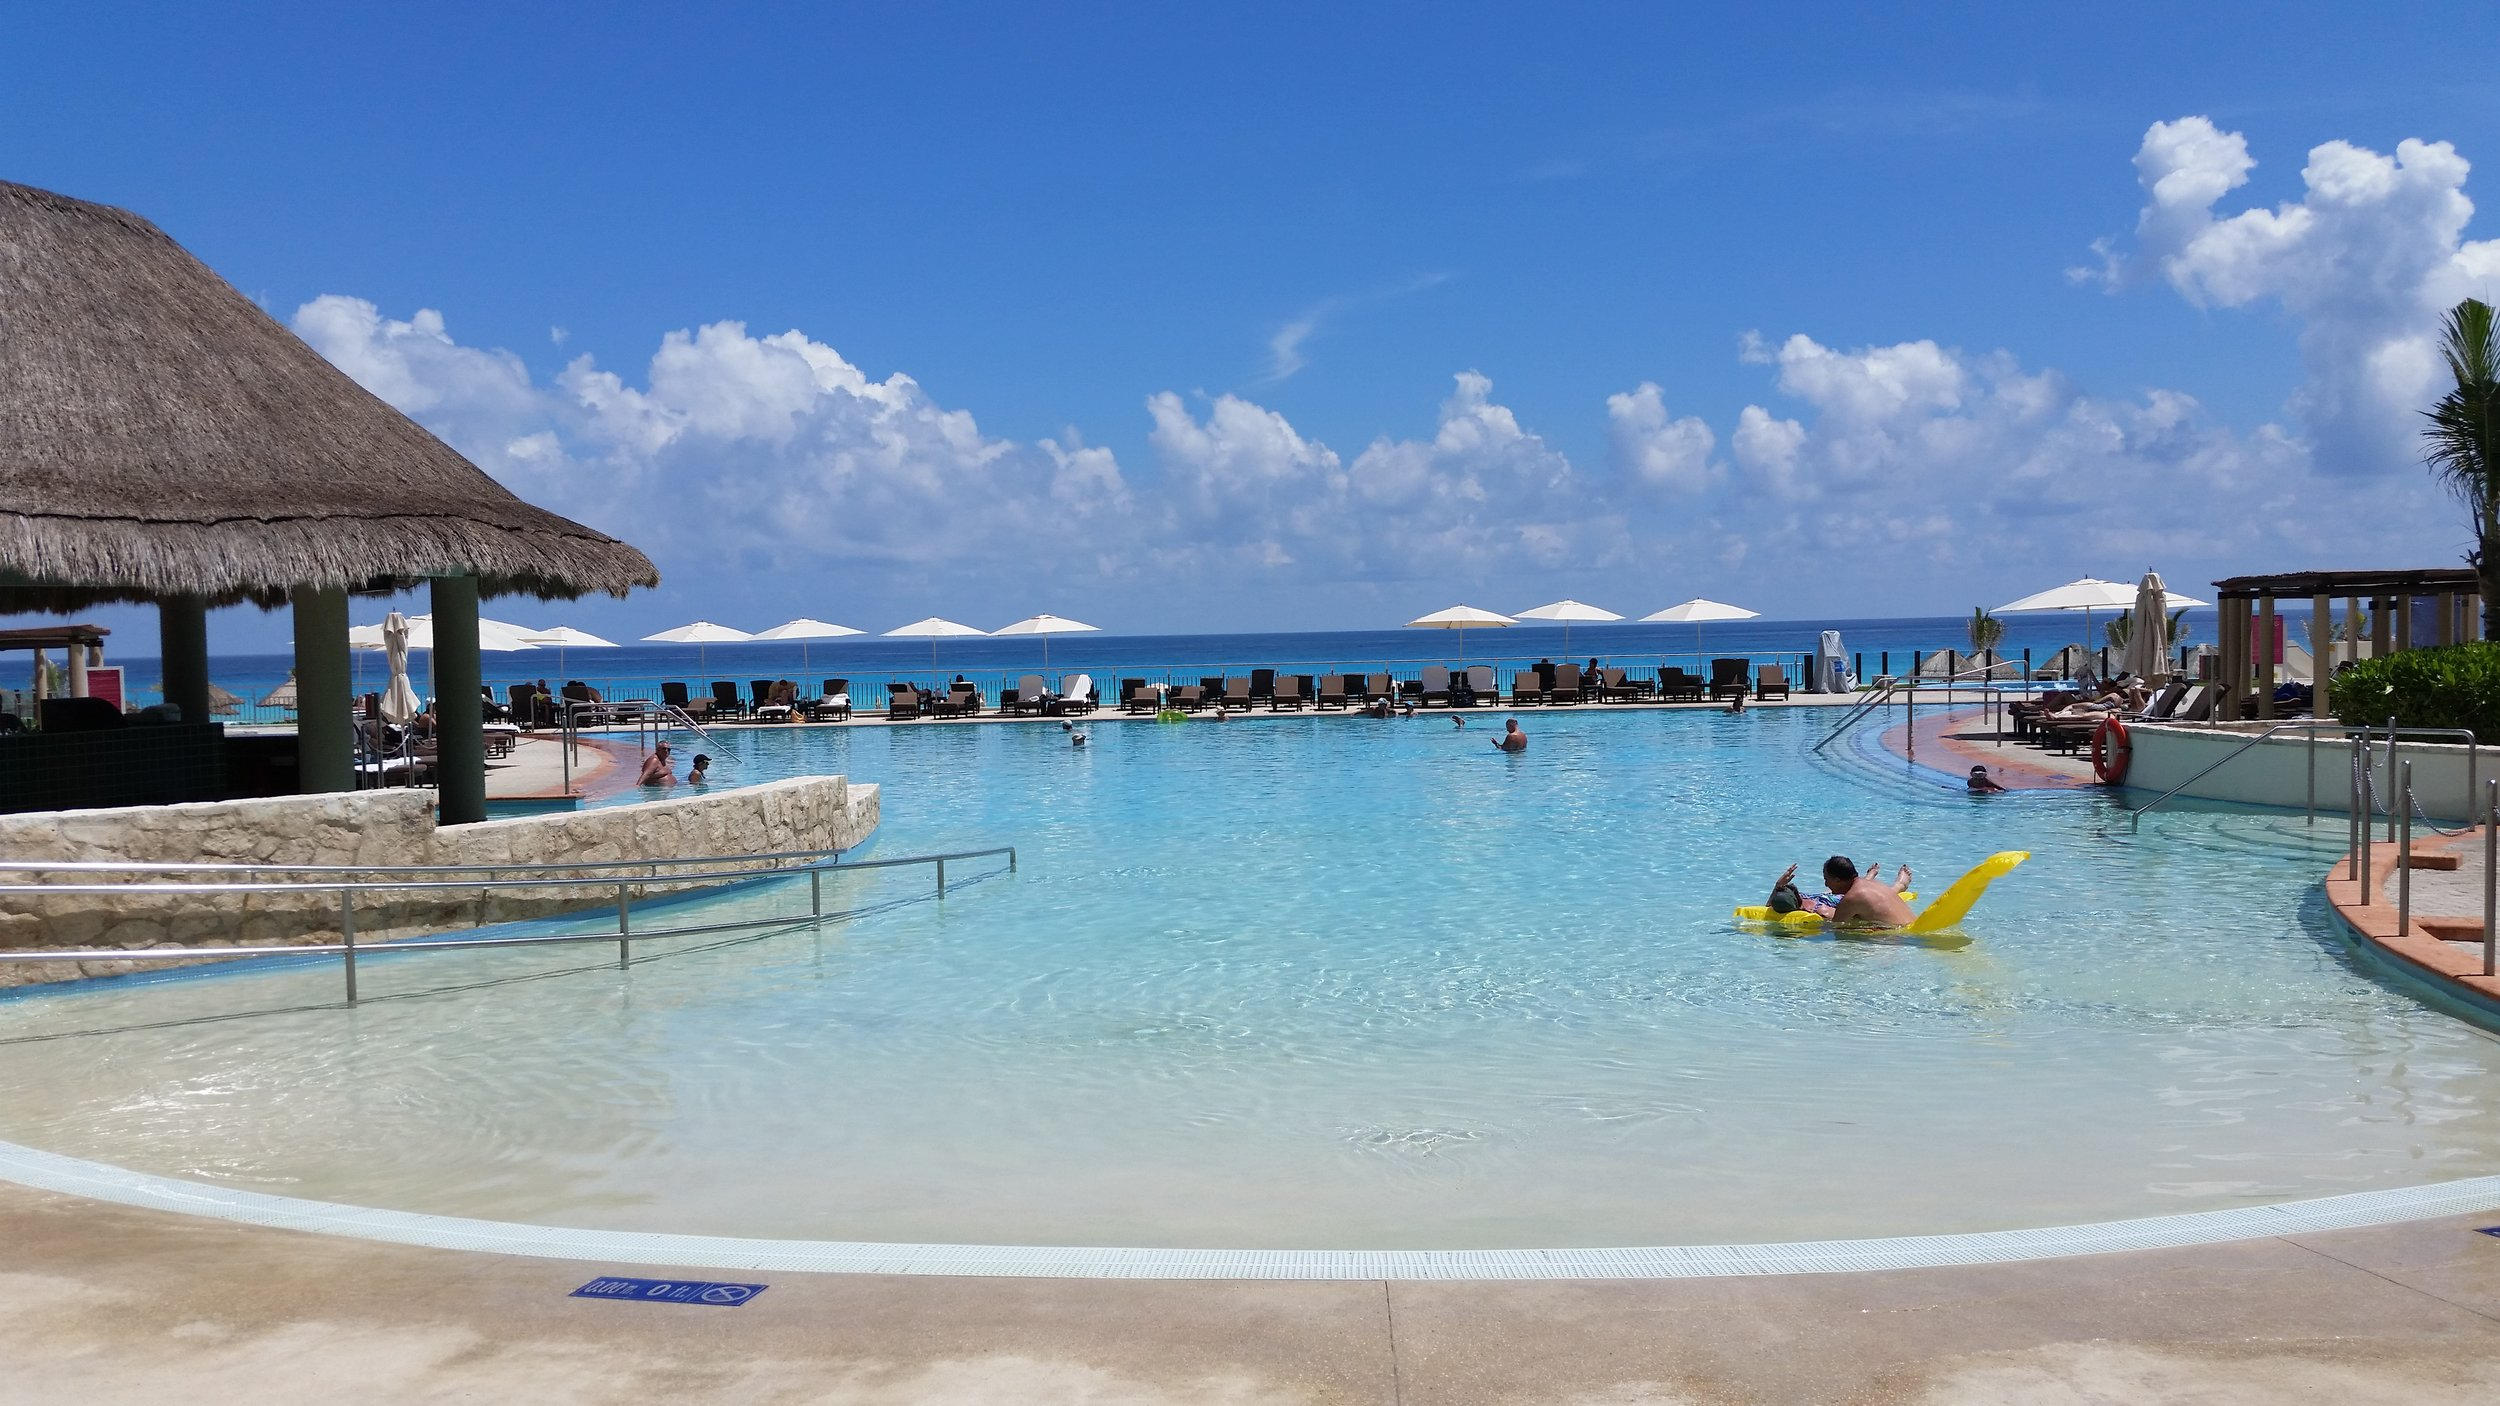 CANCUN - By Contributing Travel Editor John Roberts